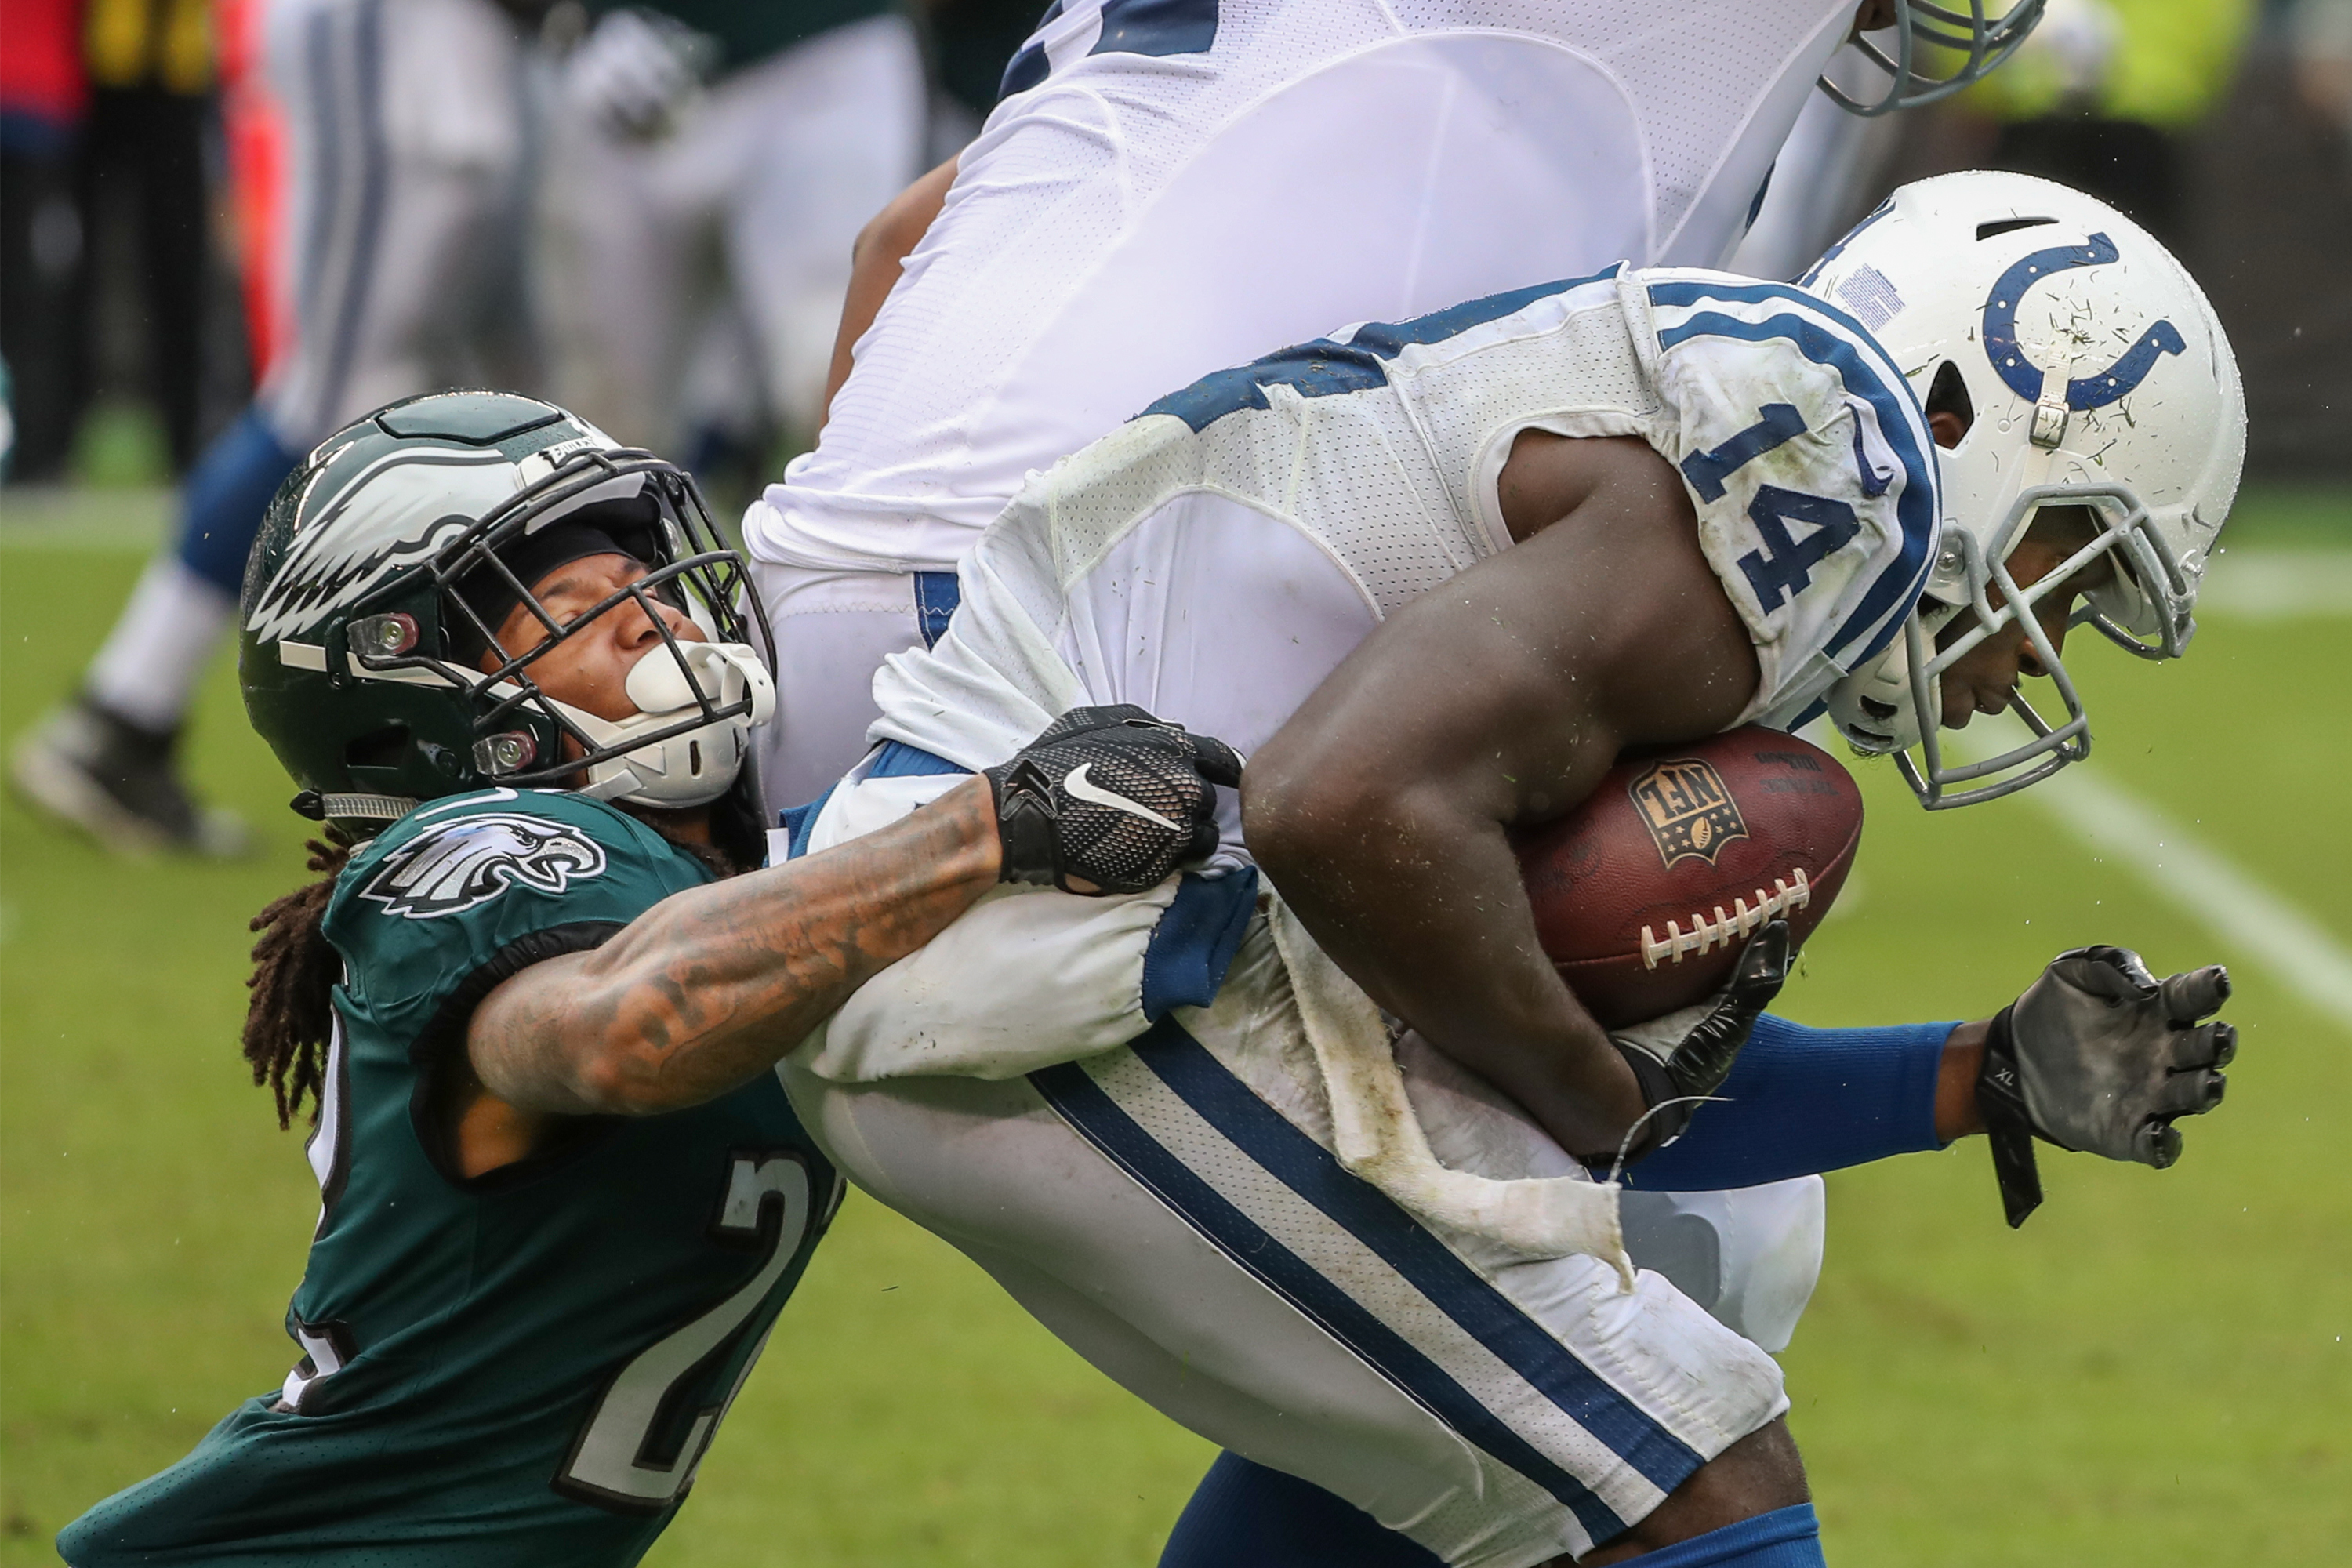 Sidney Jones takes down Colts running back Zach Pascal in the third quarter.